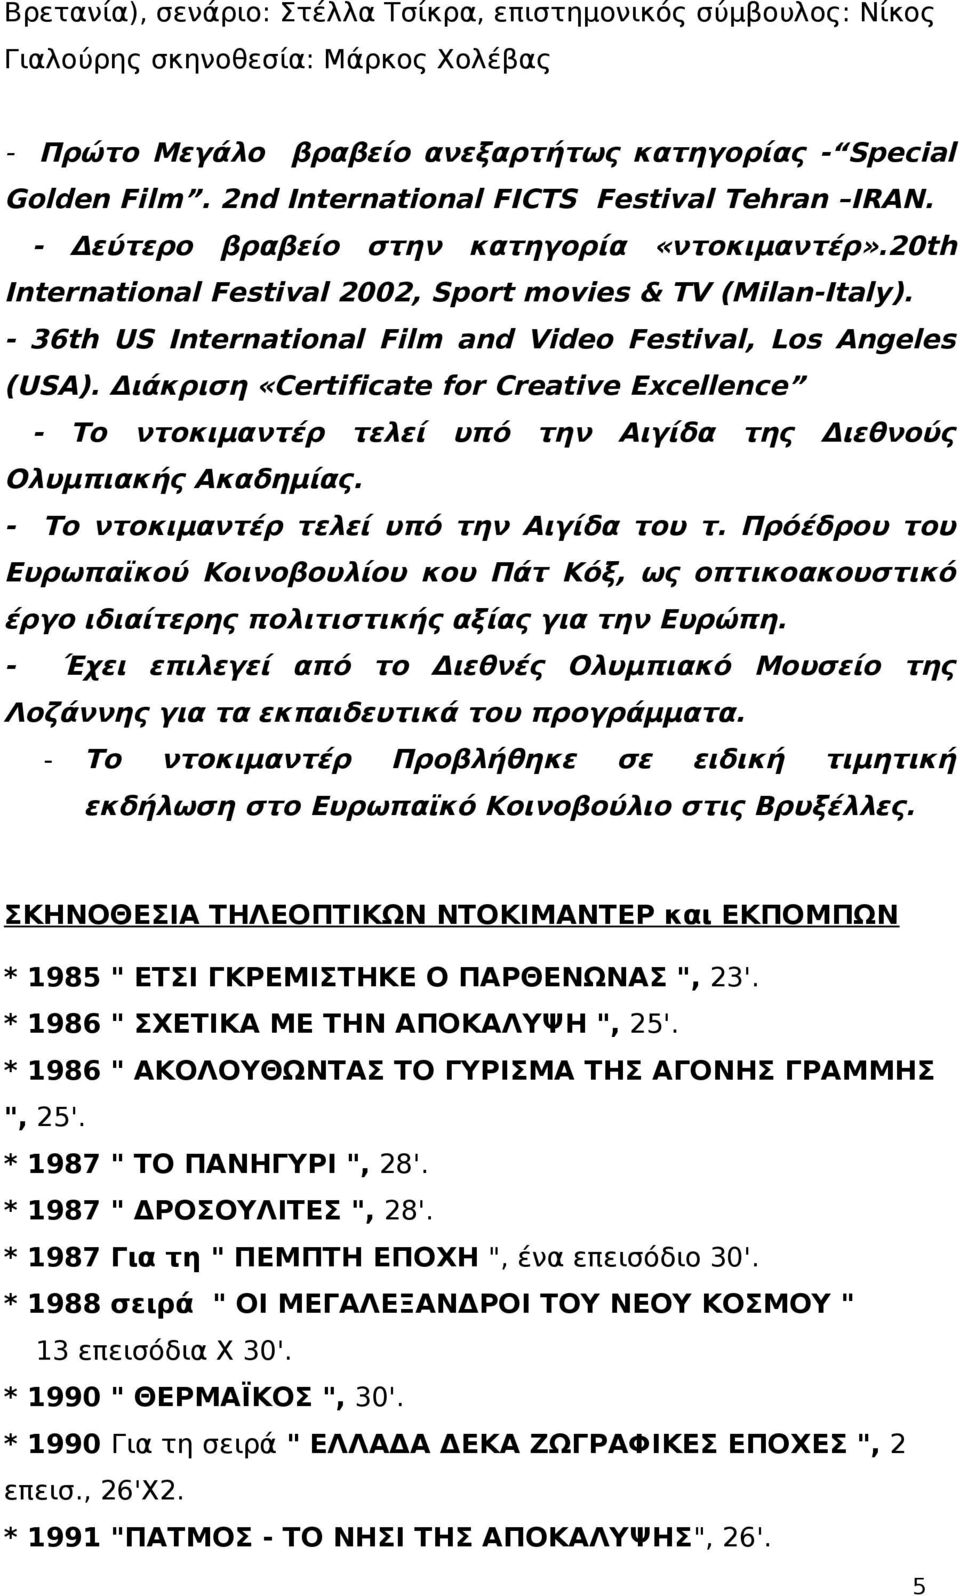 - 36th US International Film and Video Festival, Los Angeles (USA). Διάκριση «Certificate for Creative Excellence - Το ντοκιμαντέρ τελεί υπό την Αιγίδα της Διεθνούς Ολυμπιακής Ακαδημίας.